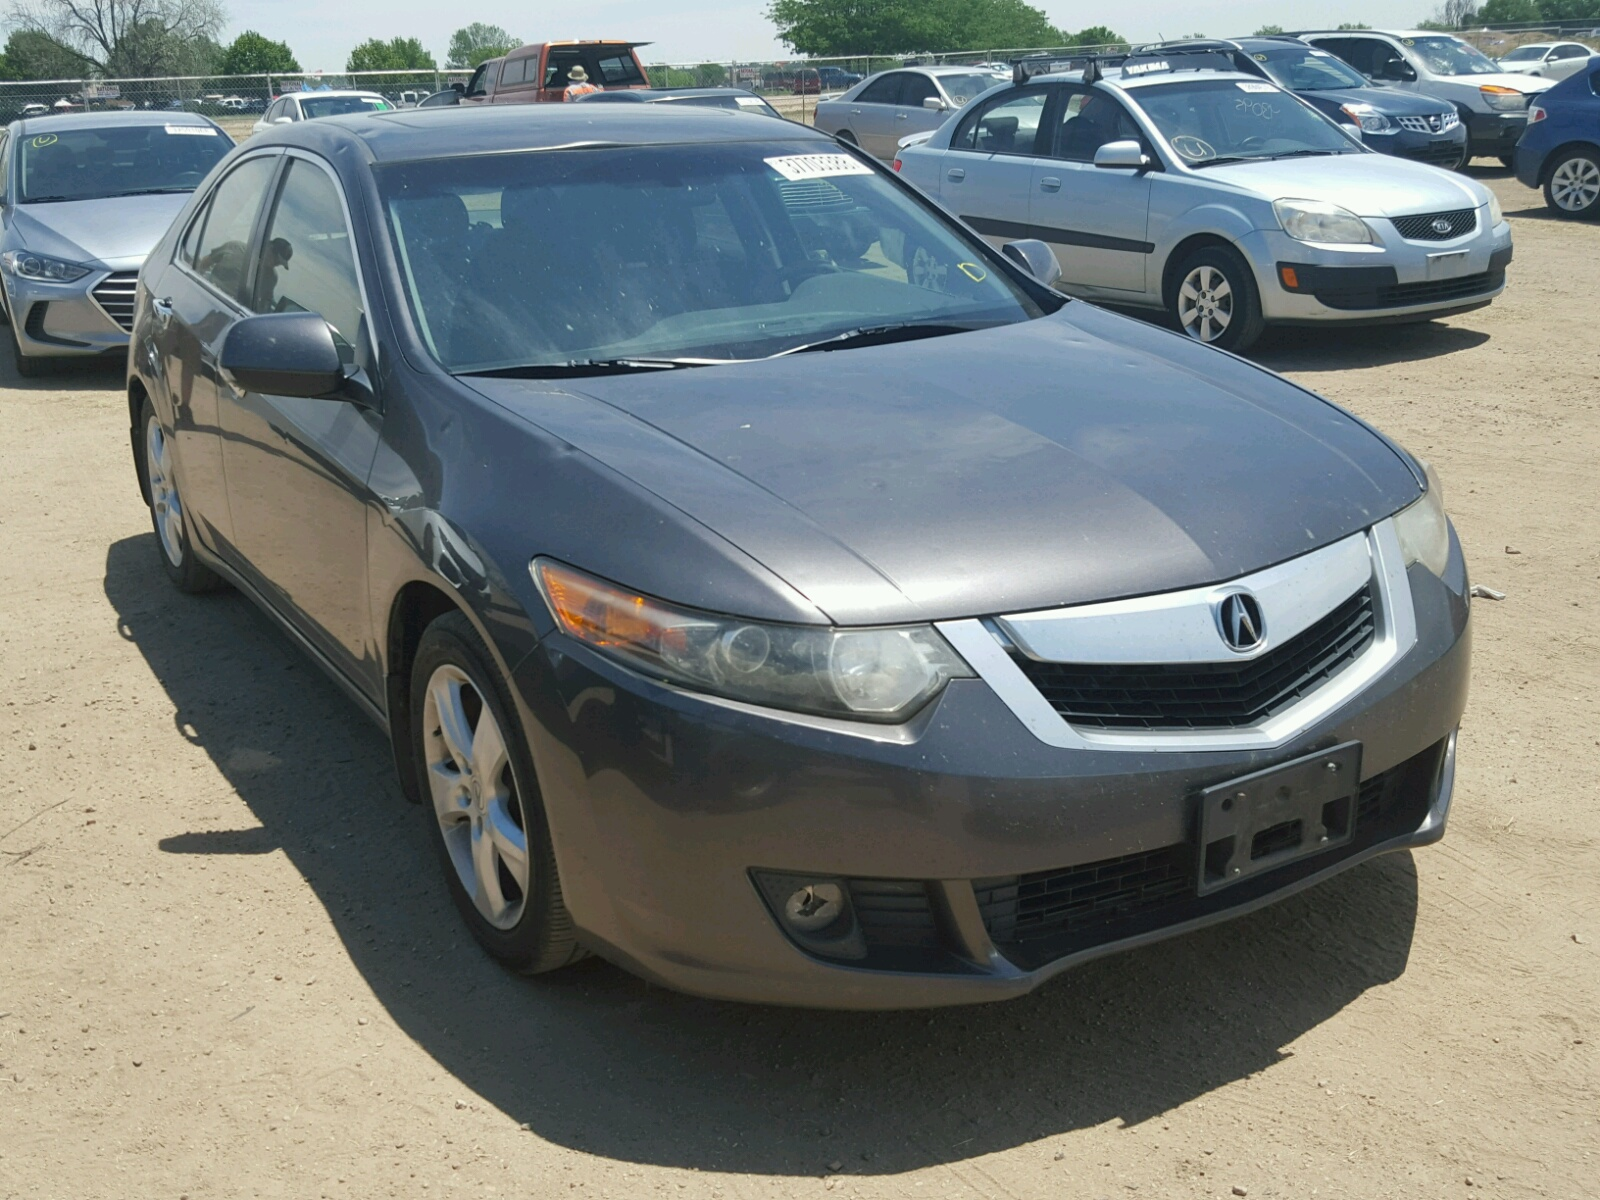 Salvage 2010 Acura TSX for sale